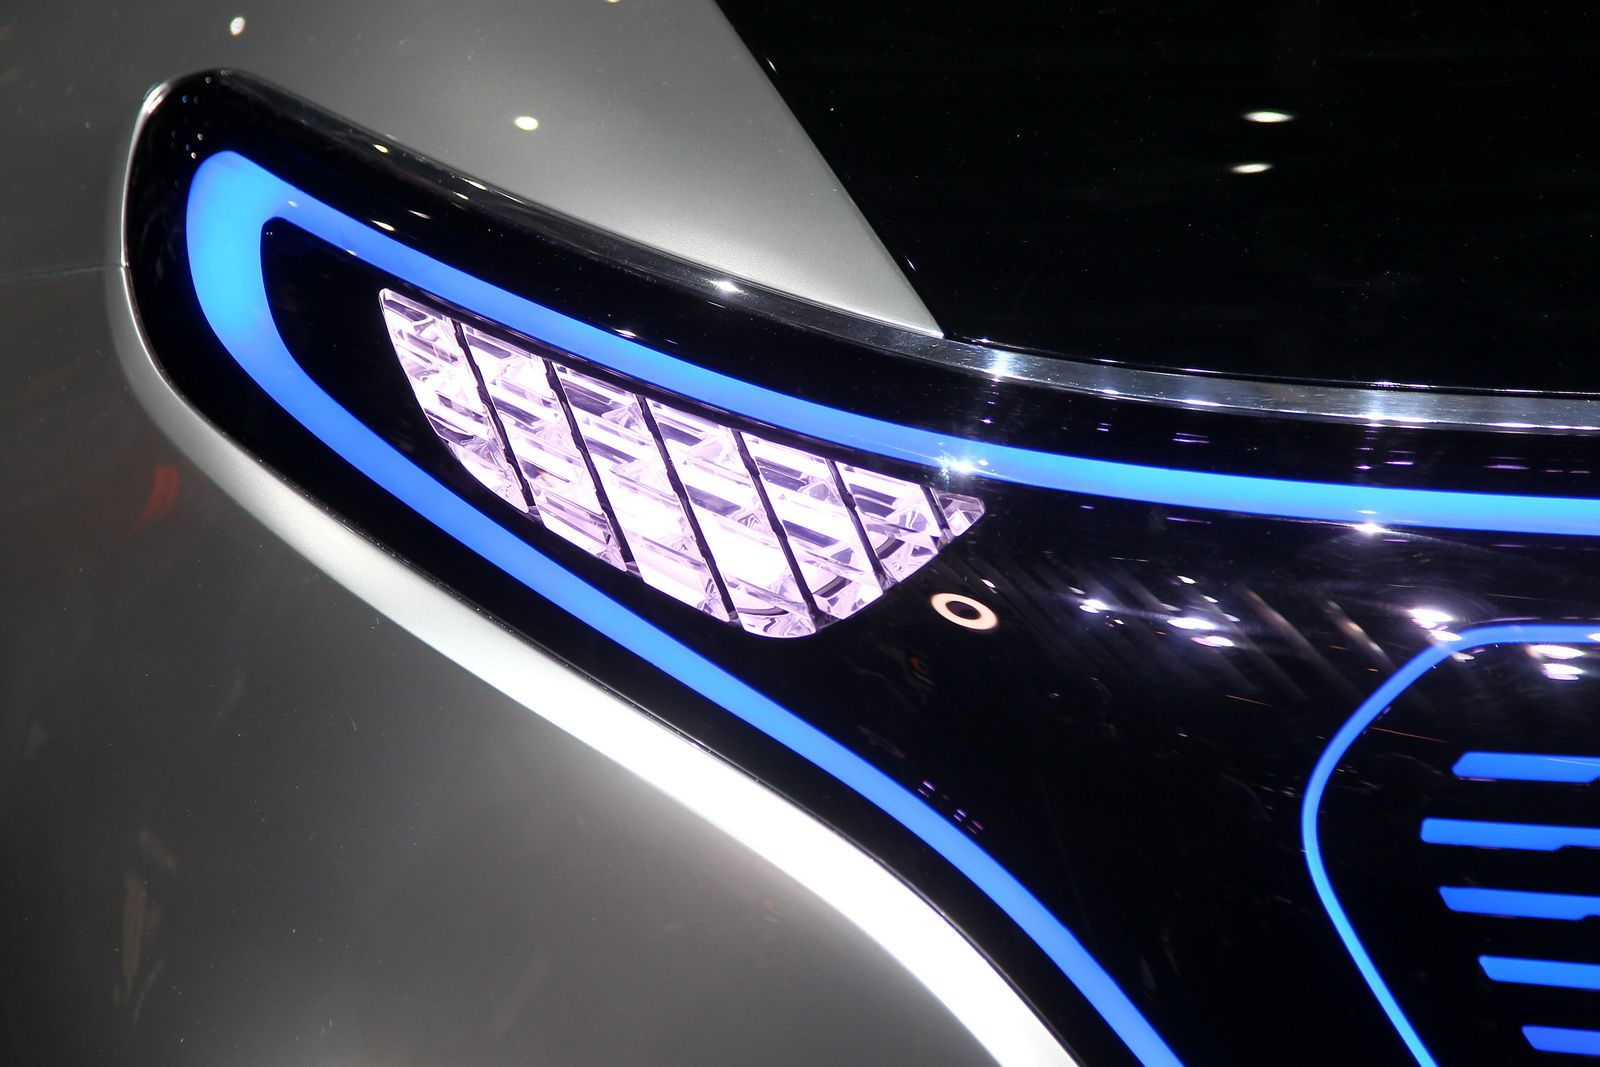 Frontlicht design mercedesu teslarivaling eq suv concept is the first sign of a new